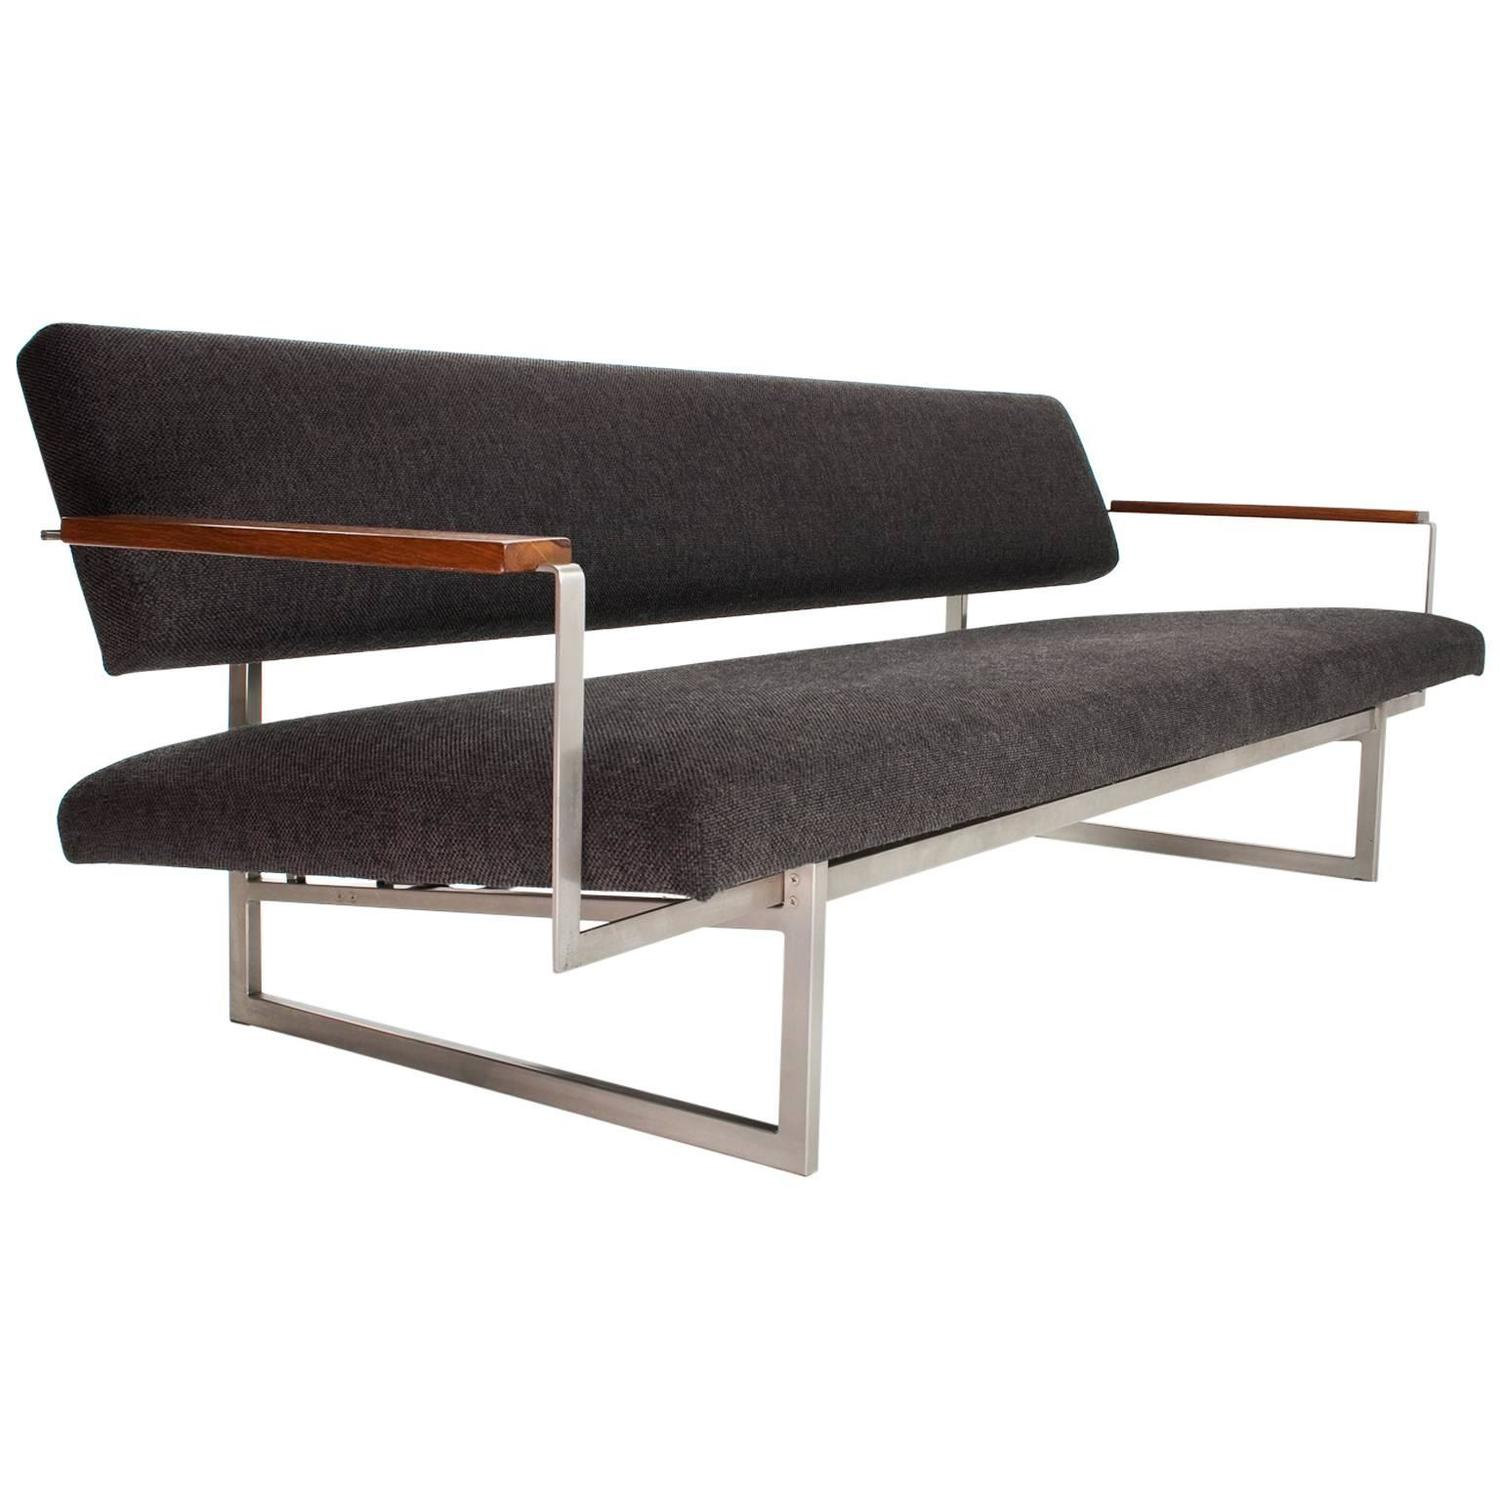 1960s industrial rob parry sofa or daybed lotus 25 model for Sofa industrial